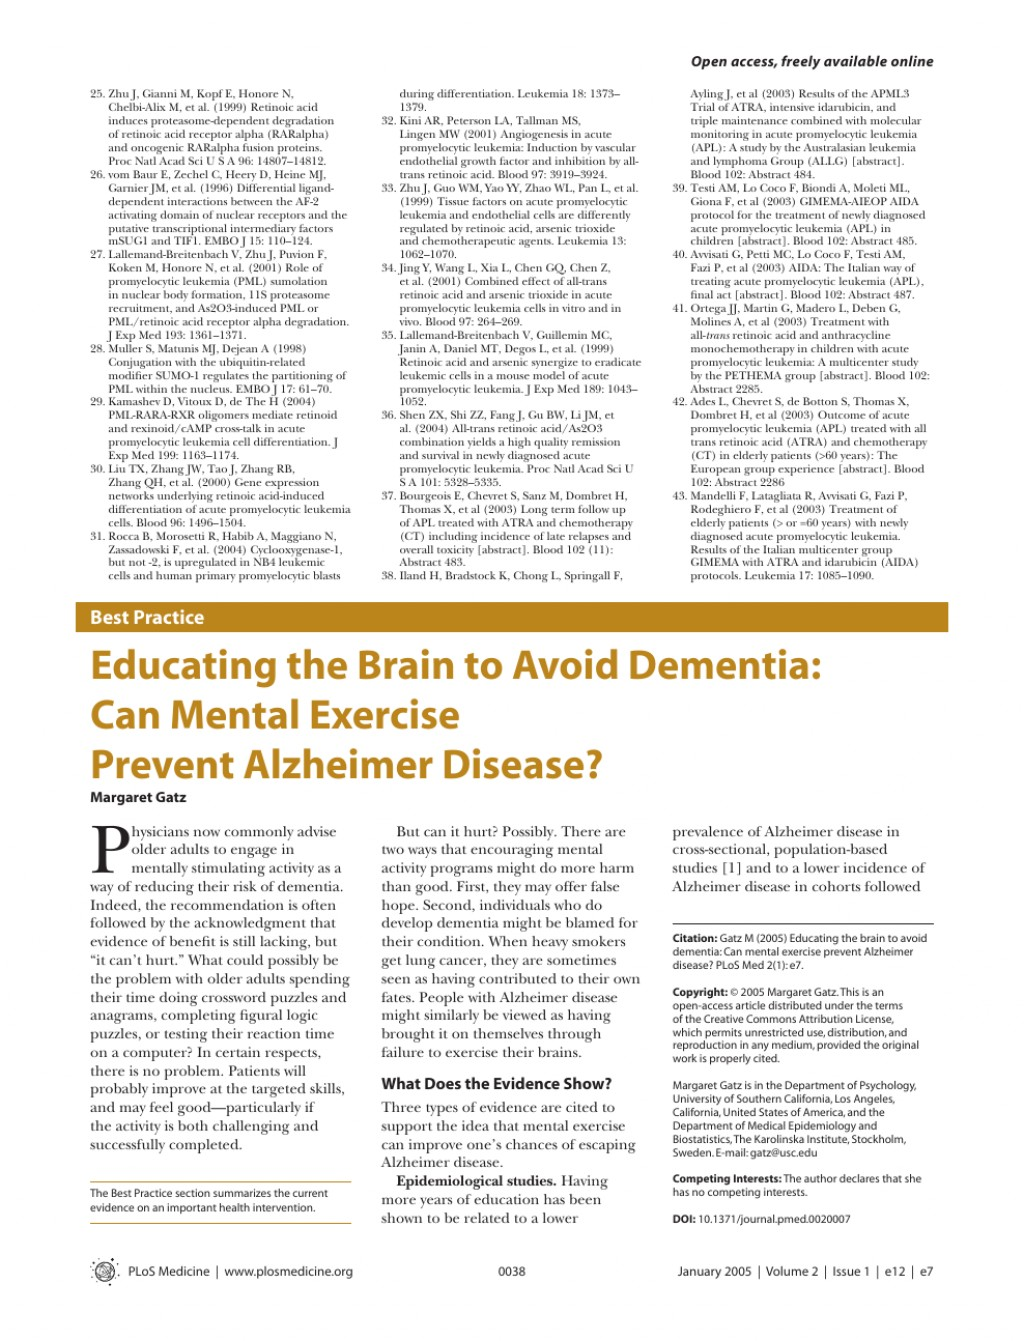 004 Research Paper Alzheimers Disease Stunning Questions Alzheimer's Topics Ideas Topic Large